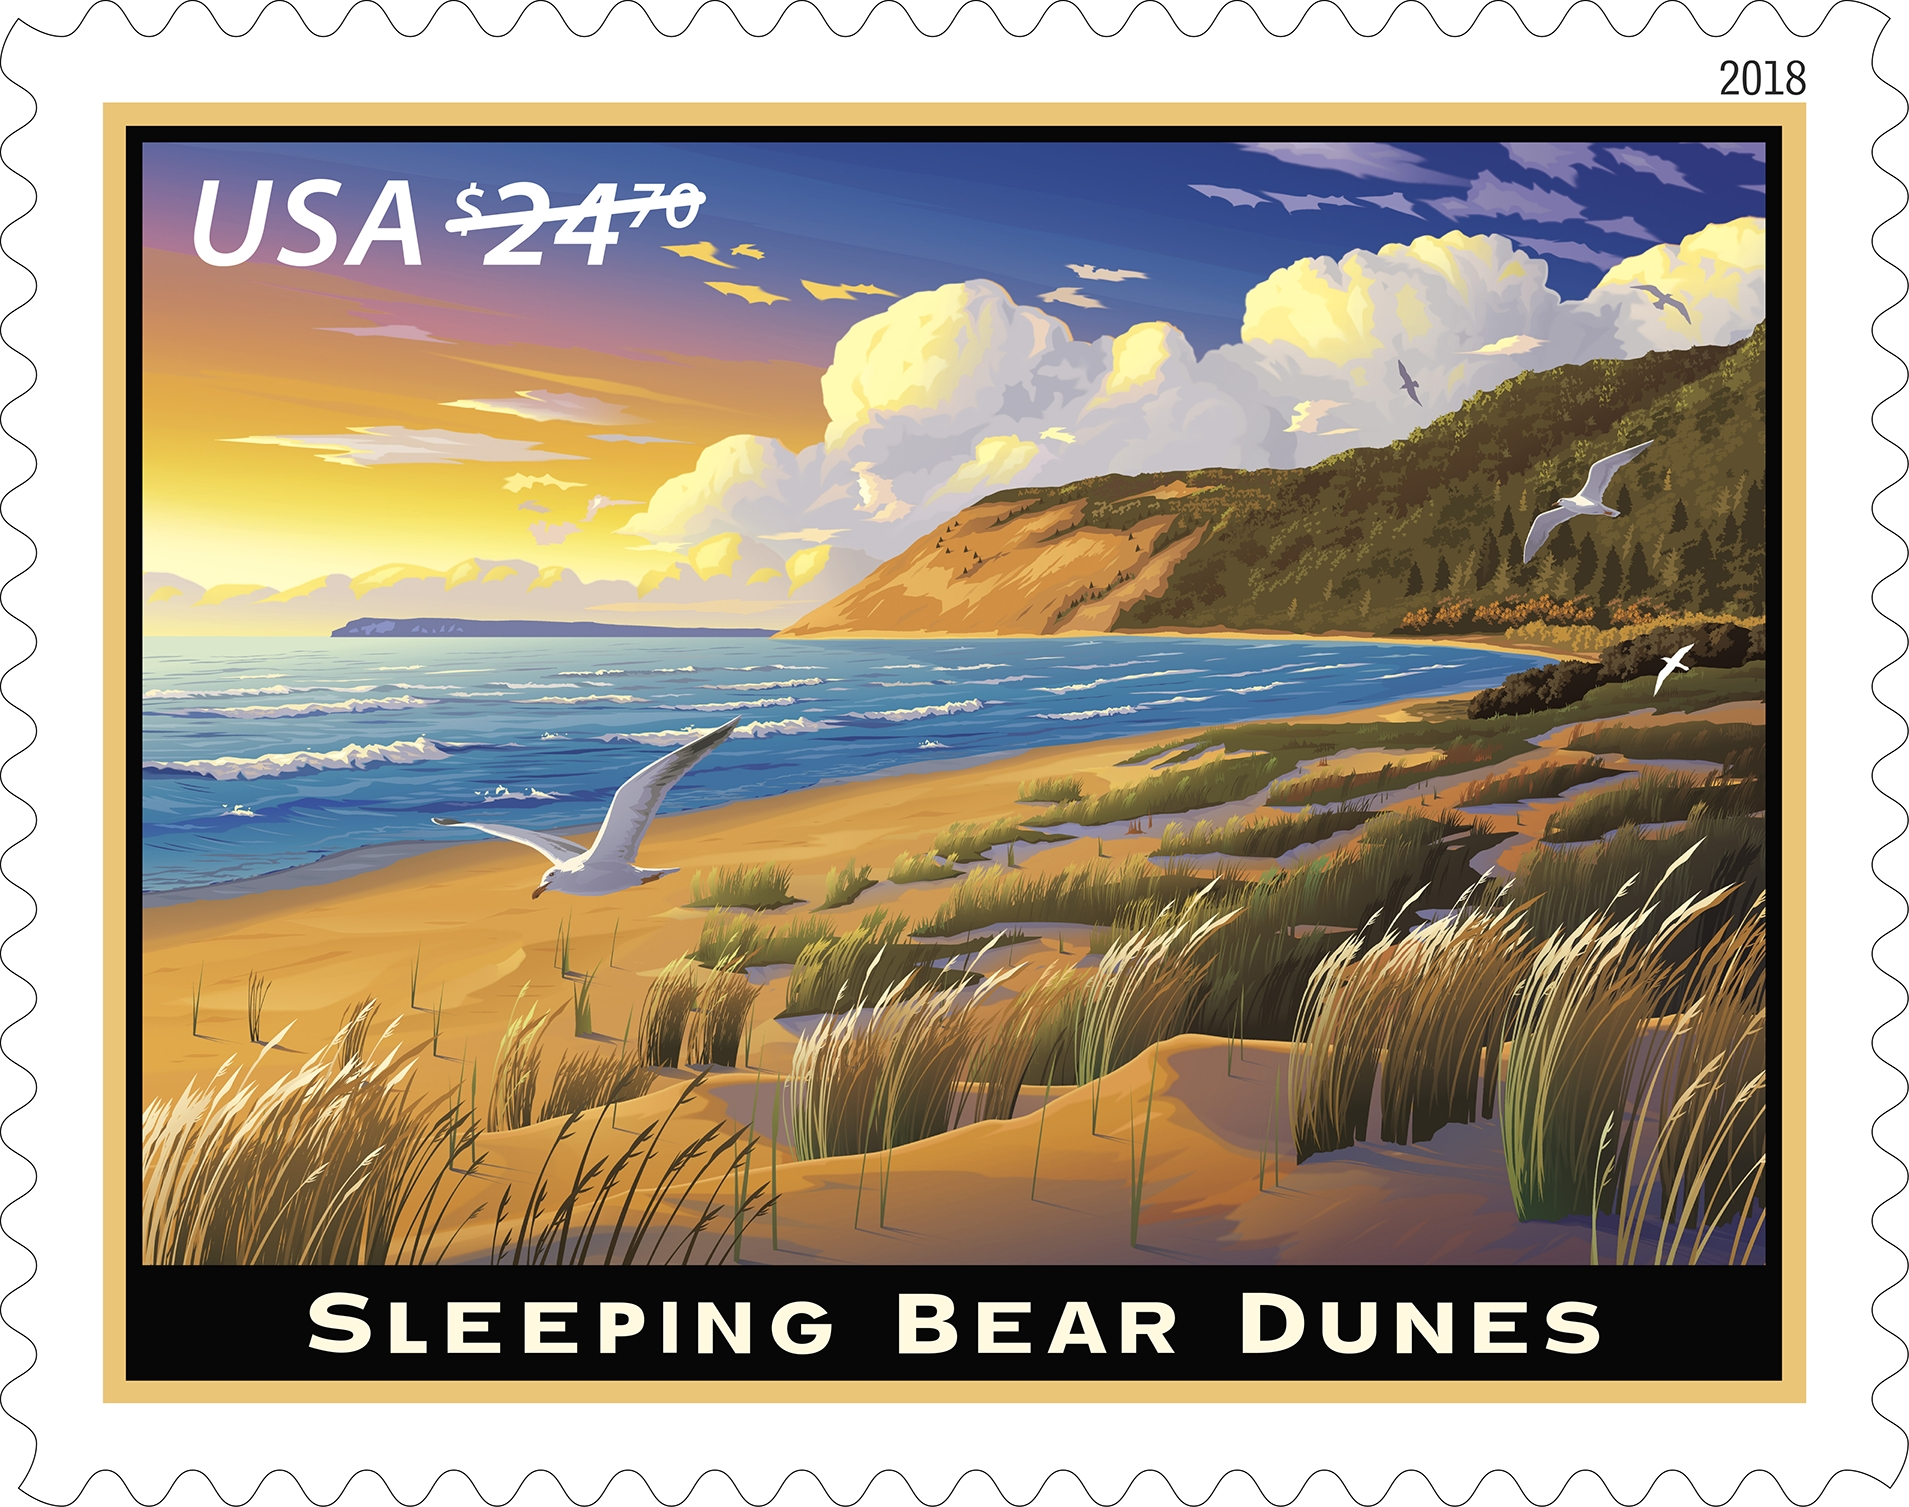 Sleeping Bear Dunes (Priority Mail Express): With this Priority Mail Express stamp, the Postal Service celebrates the Sleeping Bear Dunes, a national park in Michigan that takes its name from a Native American legend. (USPS)